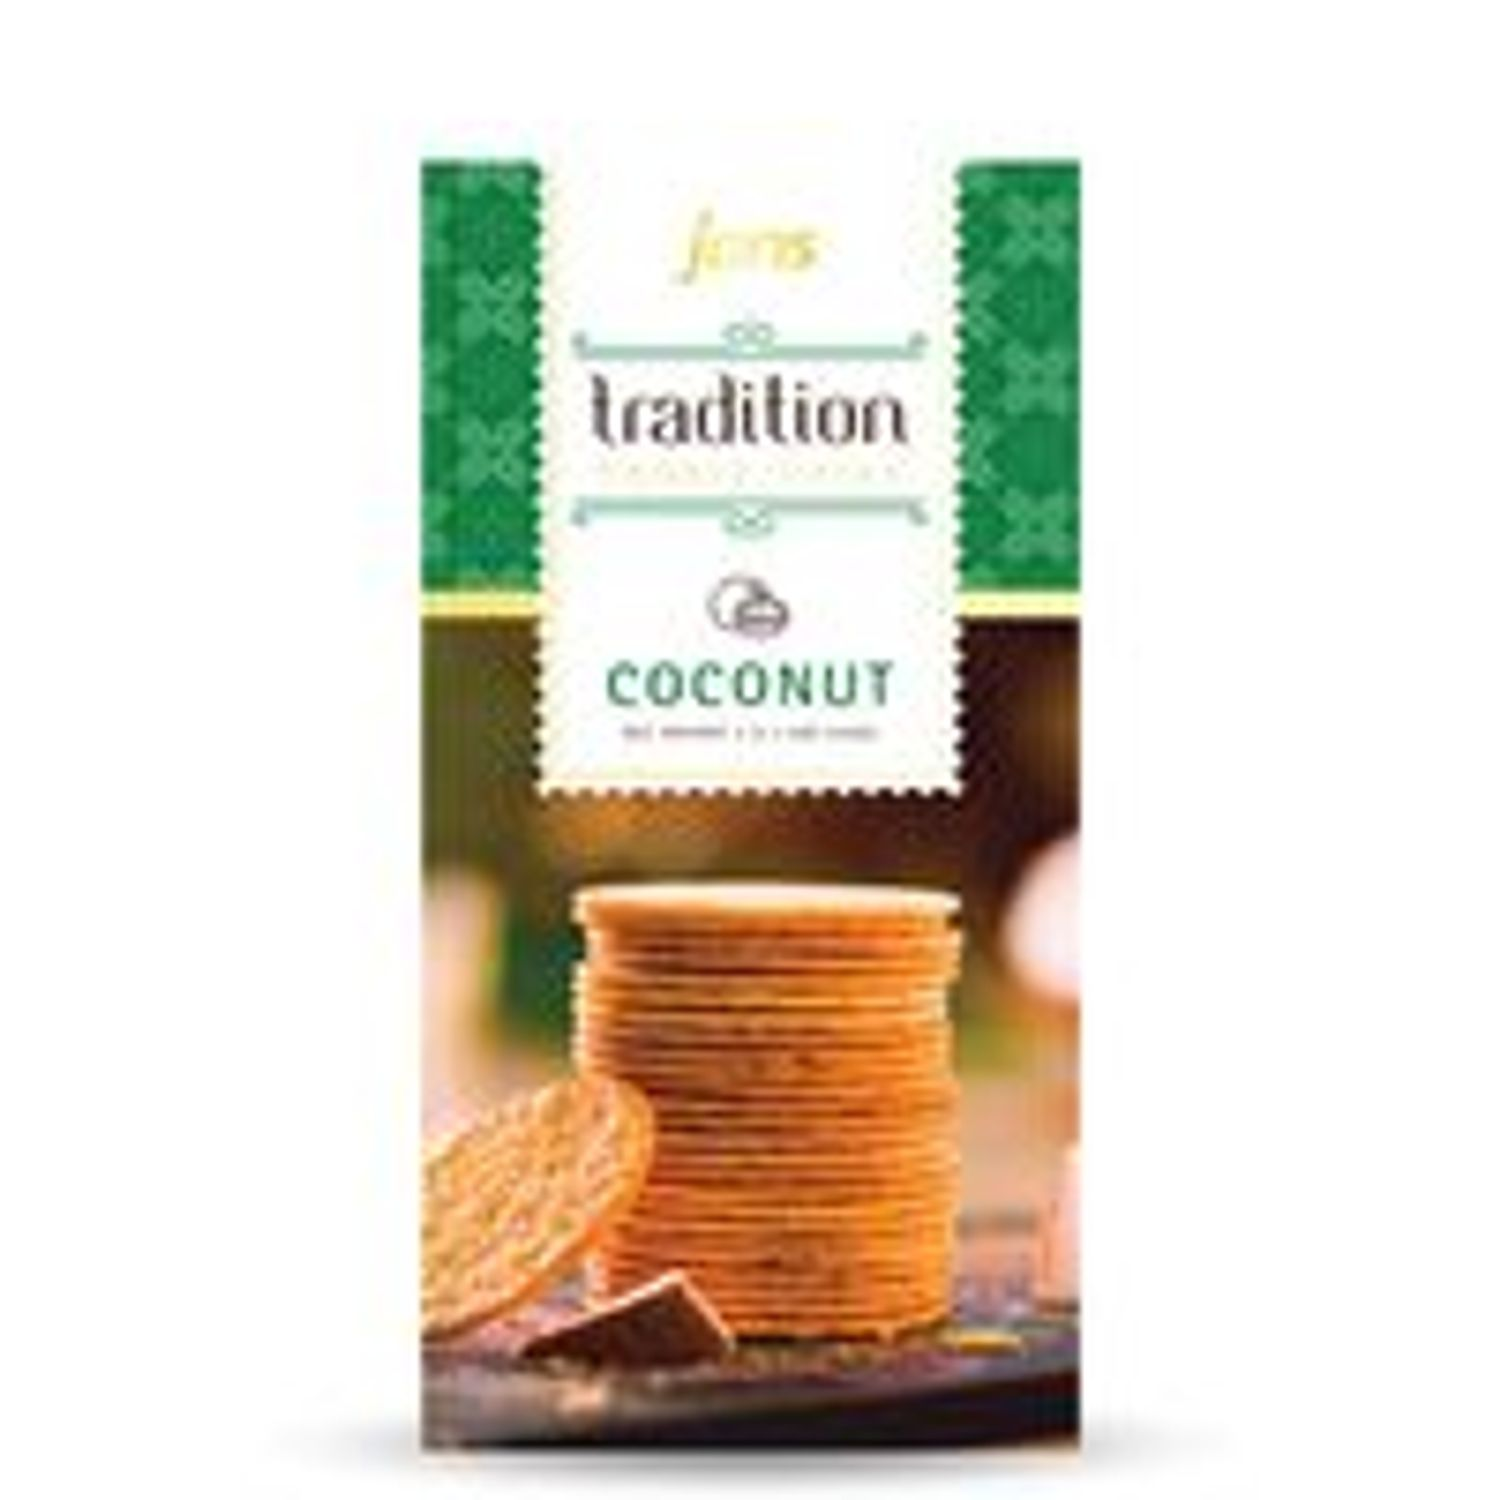 large 16093674011270.48694242044089875 jans traditional thin cookies coconut flavor 42 oz BaMtoulNB